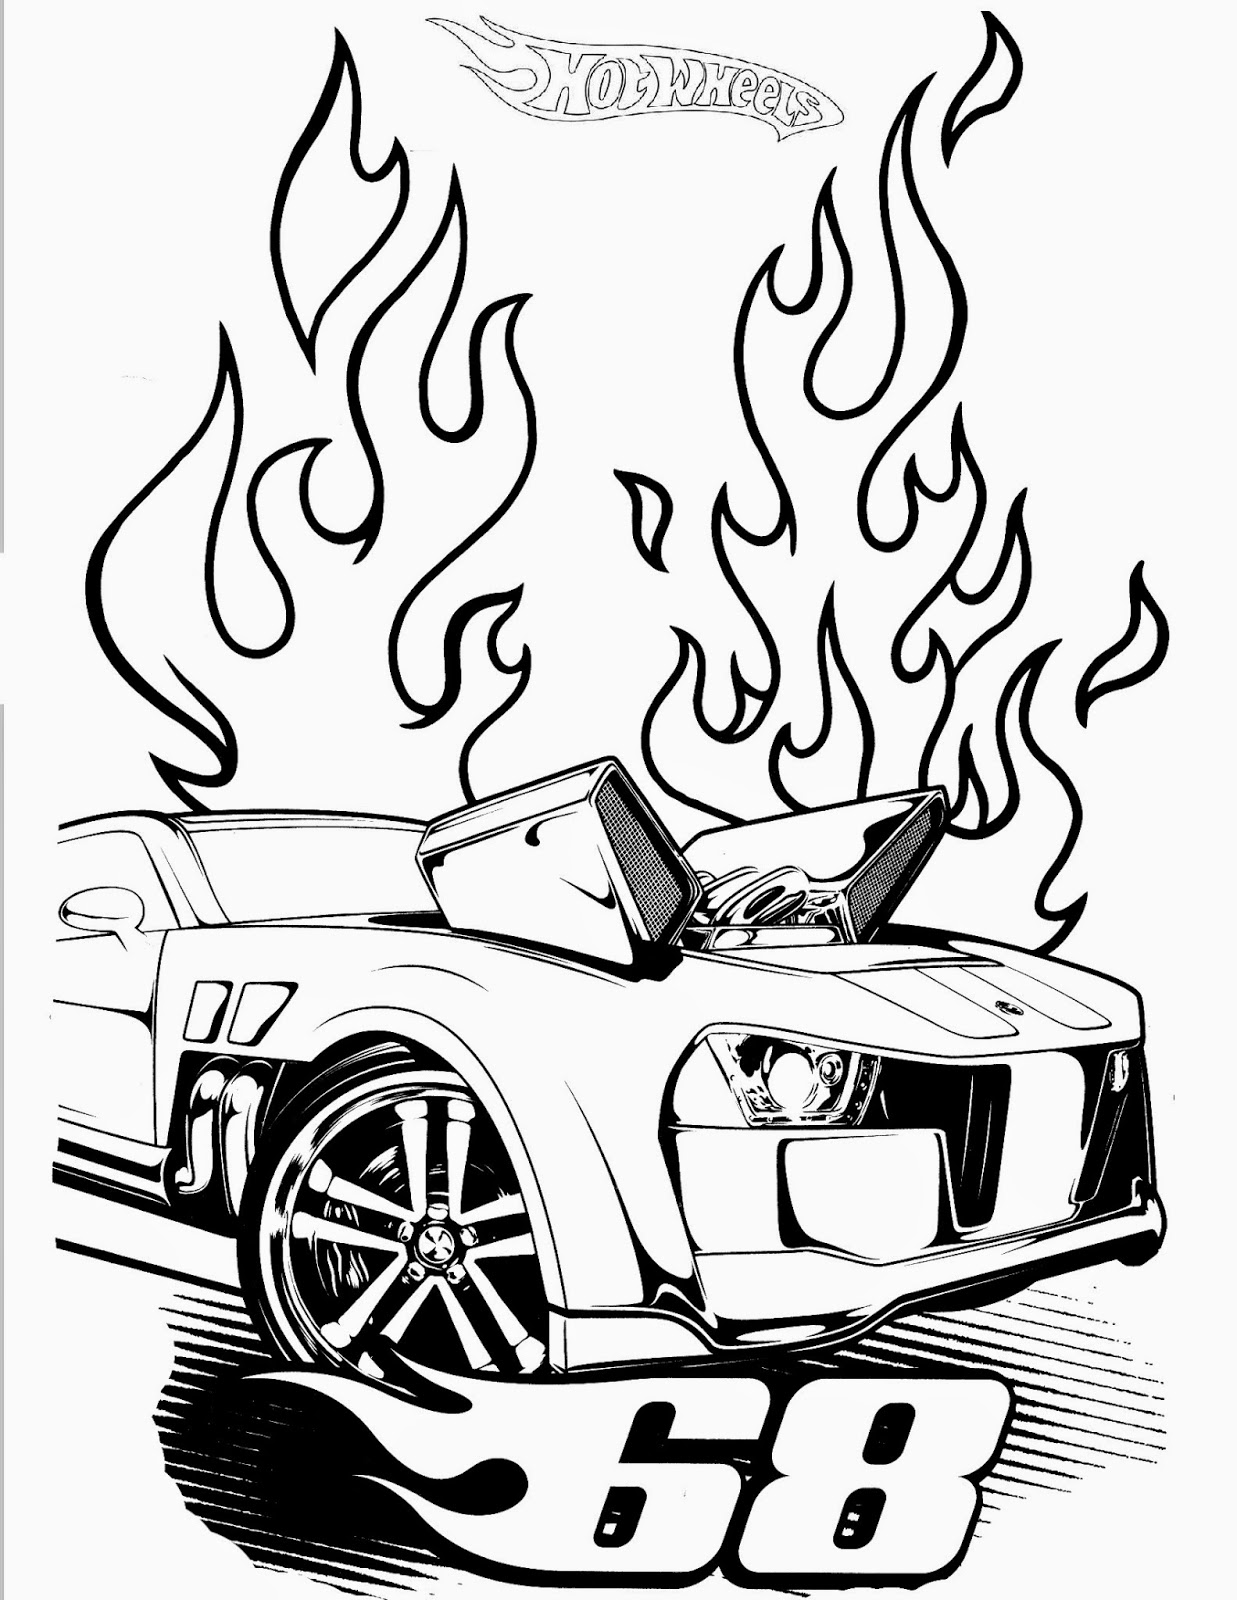 hotwheels colouring pages hot wheels racing league hot wheels coloring pages set 3 pages hotwheels colouring